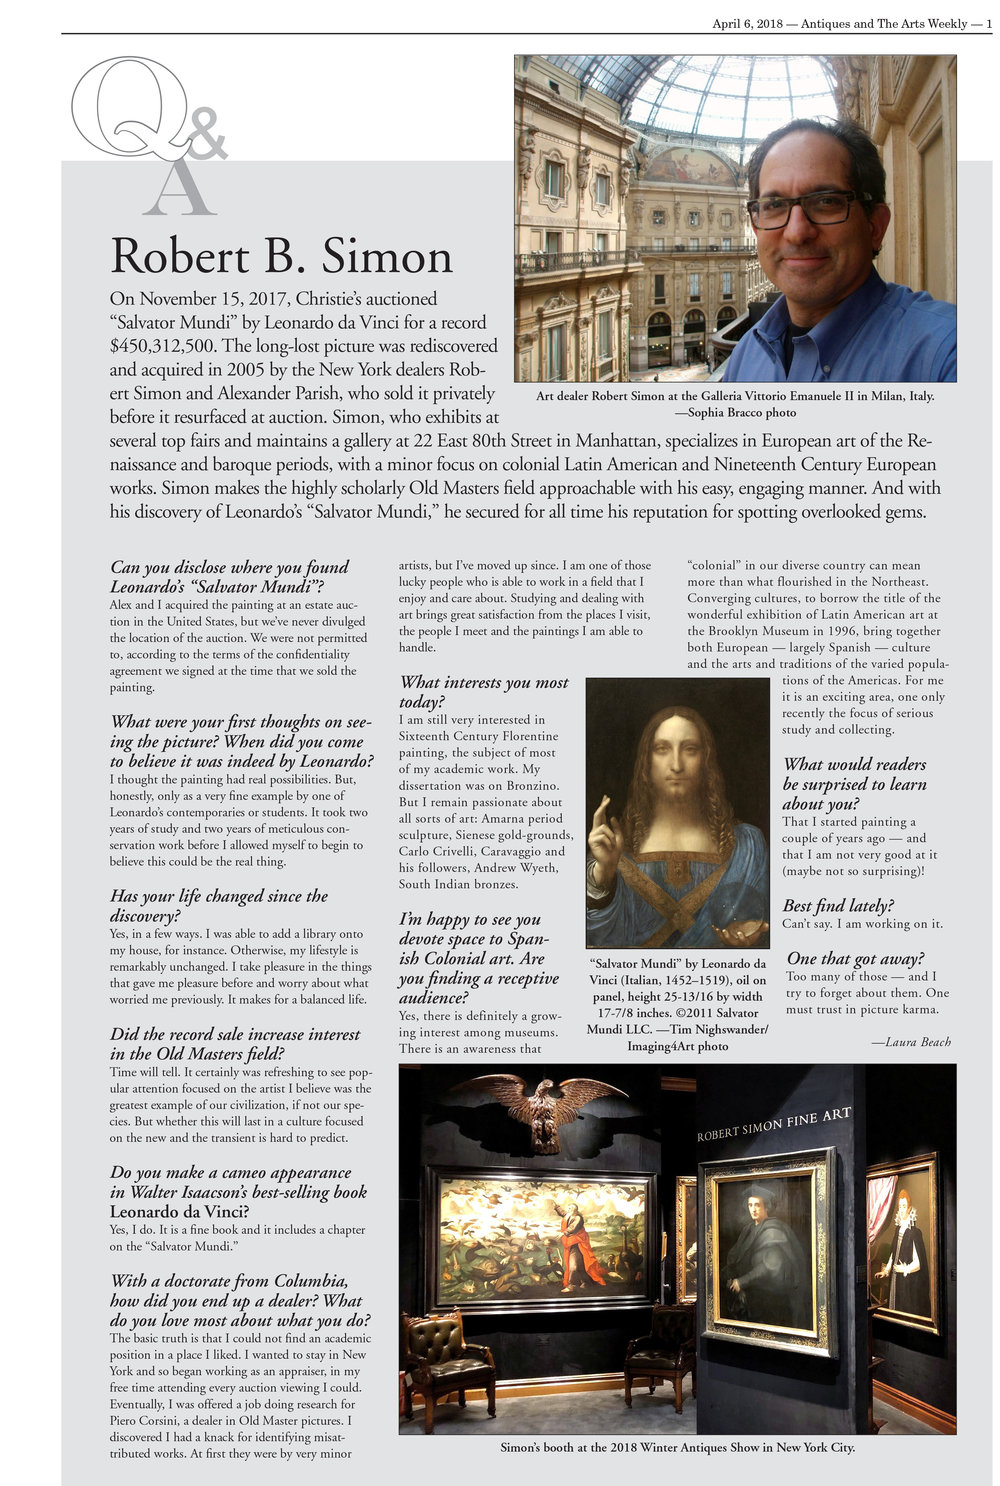 "Image: Art dealer Robert Simon at the Galleria Vittorio Emanuele II in Milan, Italy.   —Sophia Bracco photo   On November 15, 2017, Christie's auctioned ""Salvator Mundi"" by Leonardo da Vinci for a record $450,312,500. The long-lost picture was rediscovered and acquired in 2005 by the New York dealers Robert Simon and Alexander Parish, who sold it privately before it resurfaced at auction. Simon, who exhibits at several top fairs and maintains a gallery at 22 East 80th Street in Manhattan, specializes in European art of the Renaissance and baroque periods, with a minor focus on colonial Latin American and Nineteenth Century European works. Simon makes the highly scholarly Old Masters field approachable with his easy, engaging manner. And with his discovery of Leonardo's ""Salvator Mundi,"" he secured for all time his reputation for spotting overlooked gems.   Can you disclose where you found Leonardo's ""Salvator Mundi""?   Alex and I acquired the painting at an estate auction in the United States, but we've never divulged the location of the auction. We were not permitted to, according to the terms of the confidentiality agreement we signed at the time that we sold the painting.   What were your first thoughts on seeing the picture? When did you come to believe it was indeed by Leonardo?   I thought the painting had real possibilities. But, honestly, only as a very fine example by one of Leonardo's contemporaries or students. It took two years of study and two years of meticulous conservation work before I allowed myself to begin to believe this could be the real thing.   Image: ""Salvator Mundi"" by Leonardo da Vinci (Italian, 1452–1519), oil on panel, height 25-13/16 by width 17-7/8 inches. ©2011 Salvator Mundi LLC. —Tim Nighswander/Imaging4Art photo    Has your life changed since the discovery?   Yes, in a few ways. I was able to add a library onto my house, for instance. Otherwise, my lifestyle is remarkably unchanged. I take pleasure in the things that gave me pleasure before and worry about what worried me previously. It makes for a balanced life.   Did the record sale increase interest in the Old Masters field?   Time will tell. It certainly was refreshing to see popular attention focused on the artist I believe was the greatest example of our civilization, if not our species. But whether this will last in a culture focused on the new and the transient is hard to predict.   Do you make a cameo appearance in Walter Isaacson's best-selling book  Leonardo da Vinci ?   Yes, I do. It is a fine book and it includes a chapter on the ""Salvator Mundi.""   With a doctorate from Columbia, how did you end up a dealer? What do you love most about what you do?   The basic truth is that I could not find an academic position in a place I liked. I wanted to stay in New York and so began working as an appraiser, in my free time attending every auction viewing I could. Eventually, I was offered a job doing research for Piero Corsini, a dealer in Old Master pictures. I discovered I had a knack for identifying misattributed works. At first they were by very minor artists, but I've moved up since. I am one of those lucky people who is able to work in a field that I enjoy and care about. Studying and dealing with art brings great satisfaction from the places I visit, the people I meet and the paintings I am able to handle.   What interests you most today?   I am still very interested in Sixteenth Century Florentine painting, the subject of most of my academic work. My dissertation was on Bronzino. But I remain passionate about all sorts of art: Amarna period sculpture, Sienese gold-grounds, Carlo Crivelli, Caravaggio and his followers, Andrew Wyeth, South Indian bronzes.   Image: Robert Simon's booth at the 2018 Winter Antiques Show in New York City.    I'm happy to see you devote space to Spanish Colonial art. Are you finding a receptive audience?   Yes, there is definitely a growing interest among museums. There is an awareness that ""colonial"" in our diverse country can mean more than what flourished in the Northeast. Converging cultures, to borrow the title of the wonderful exhibition of Latin American art at the Brooklyn Museum in 1996, bring together both European – largely Spanish – culture and the arts and traditions of the varied populations of the Americas. For me it is an exciting area, one only recently the focus of serious study and collecting.   What would readers be surprised to learn about you?   That I started painting a couple of years ago – and that I am not very good at it (maybe not so surprising)!   Best find lately?   Can't say. I am working on it.   One that got away?   Too many of those – and I try to forget about them. One must trust in picture karma.   -Laura Beach"